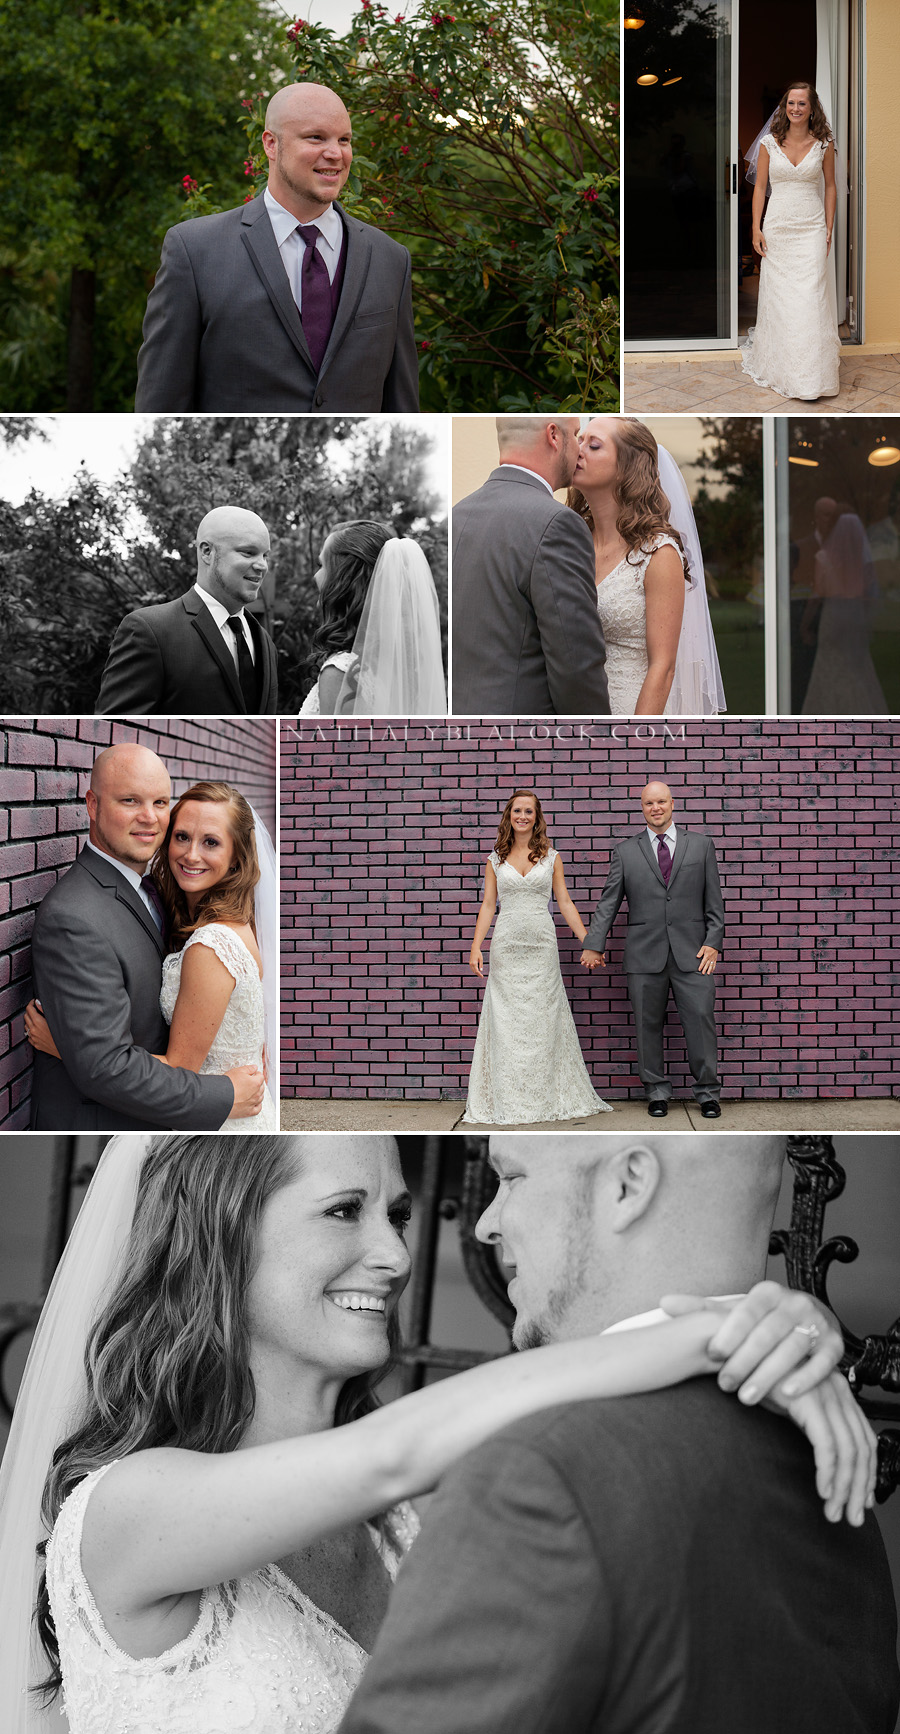 WilkesWeddingCollage3